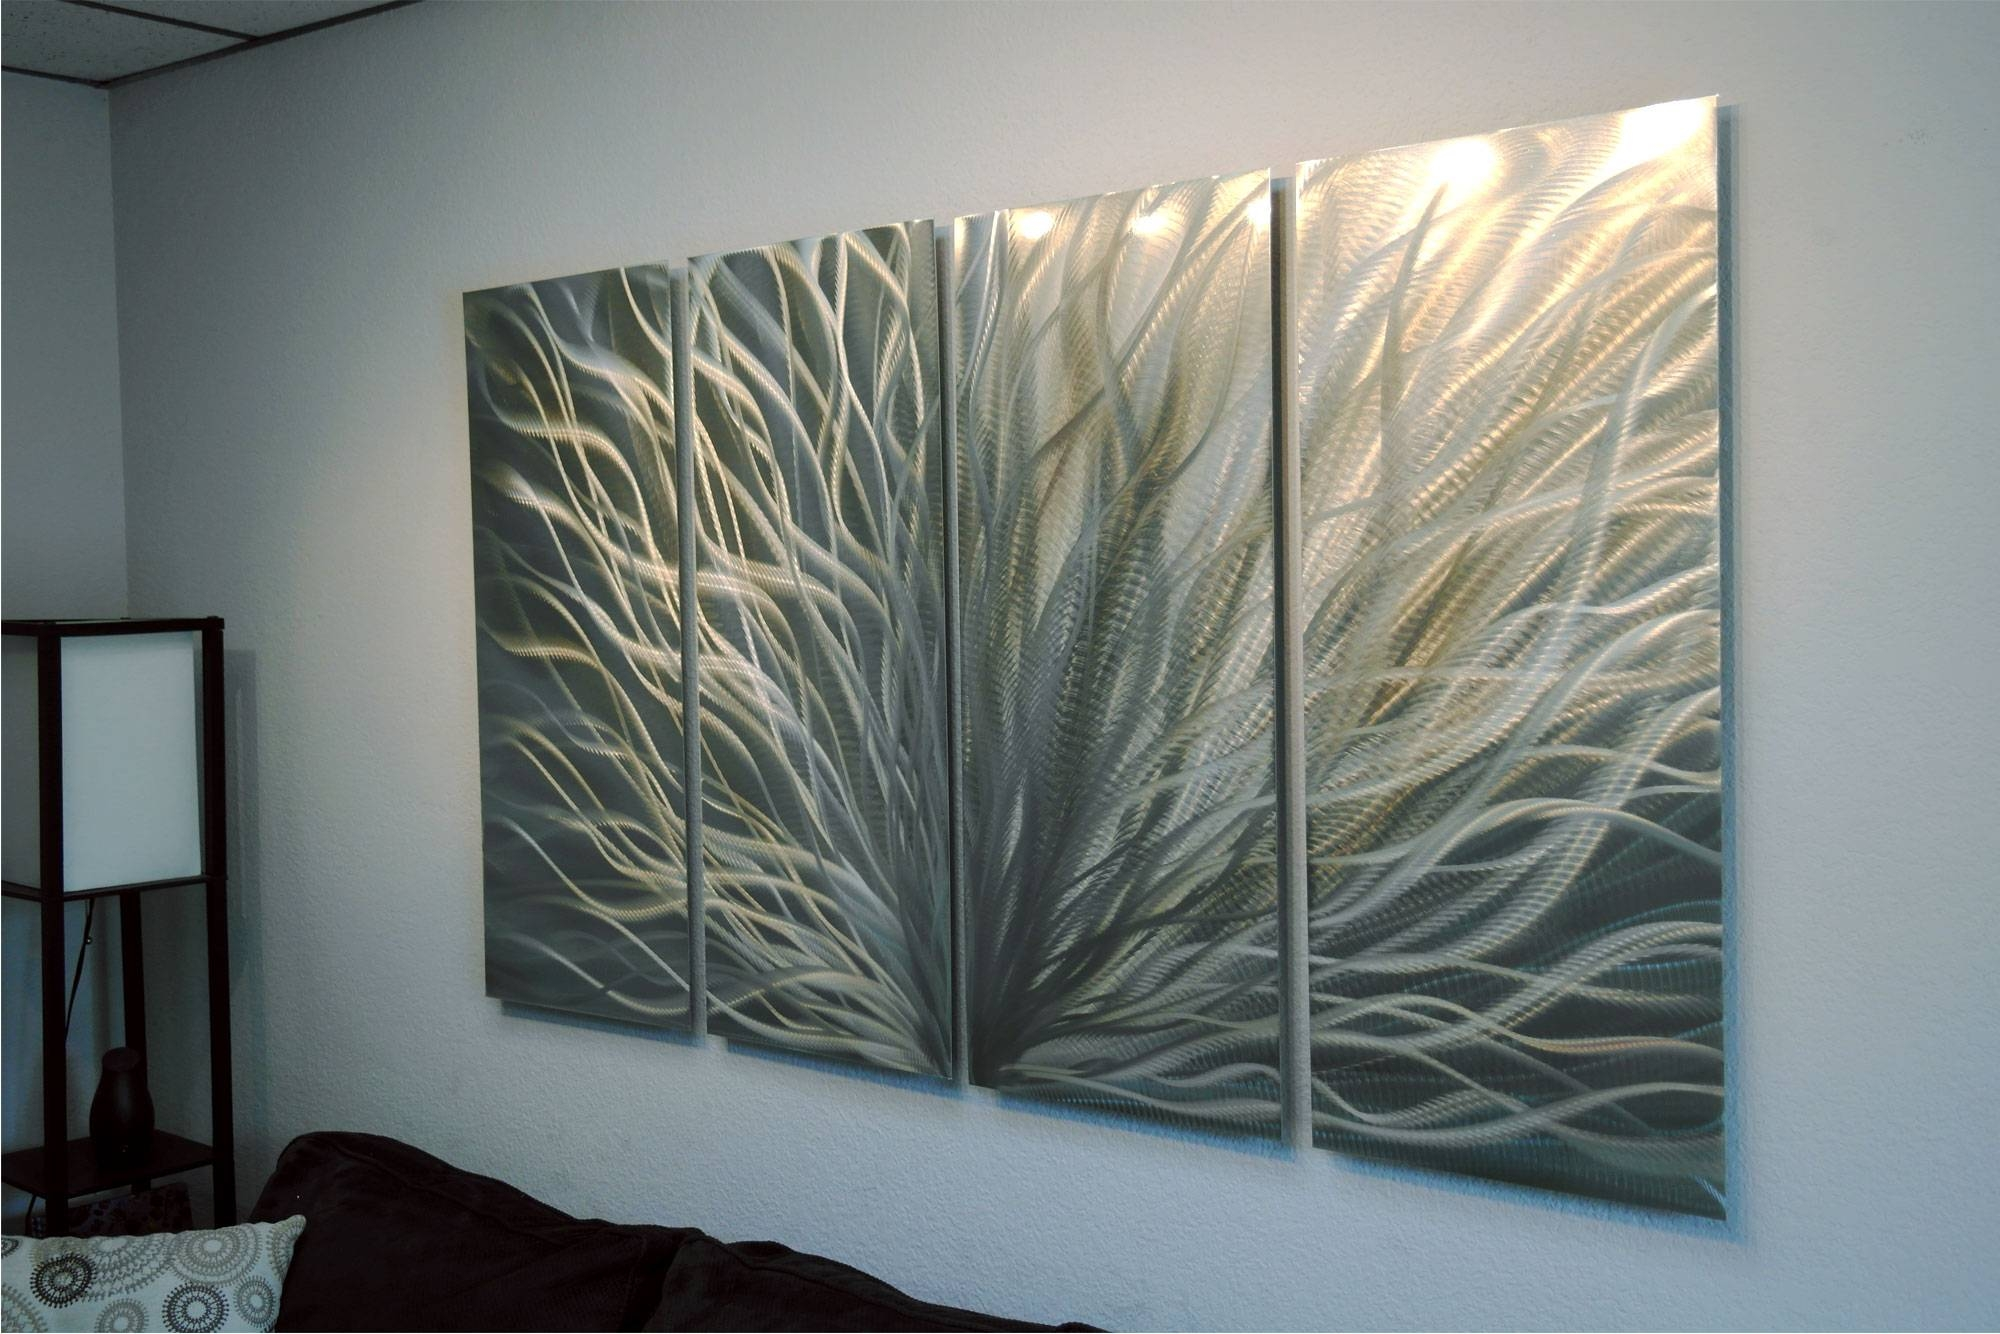 Radiance Silver And Gold 36X63 – Abstract Metal Wall Art In Most Up To Date Silver And Gold Wall Art (Gallery 15 of 15)